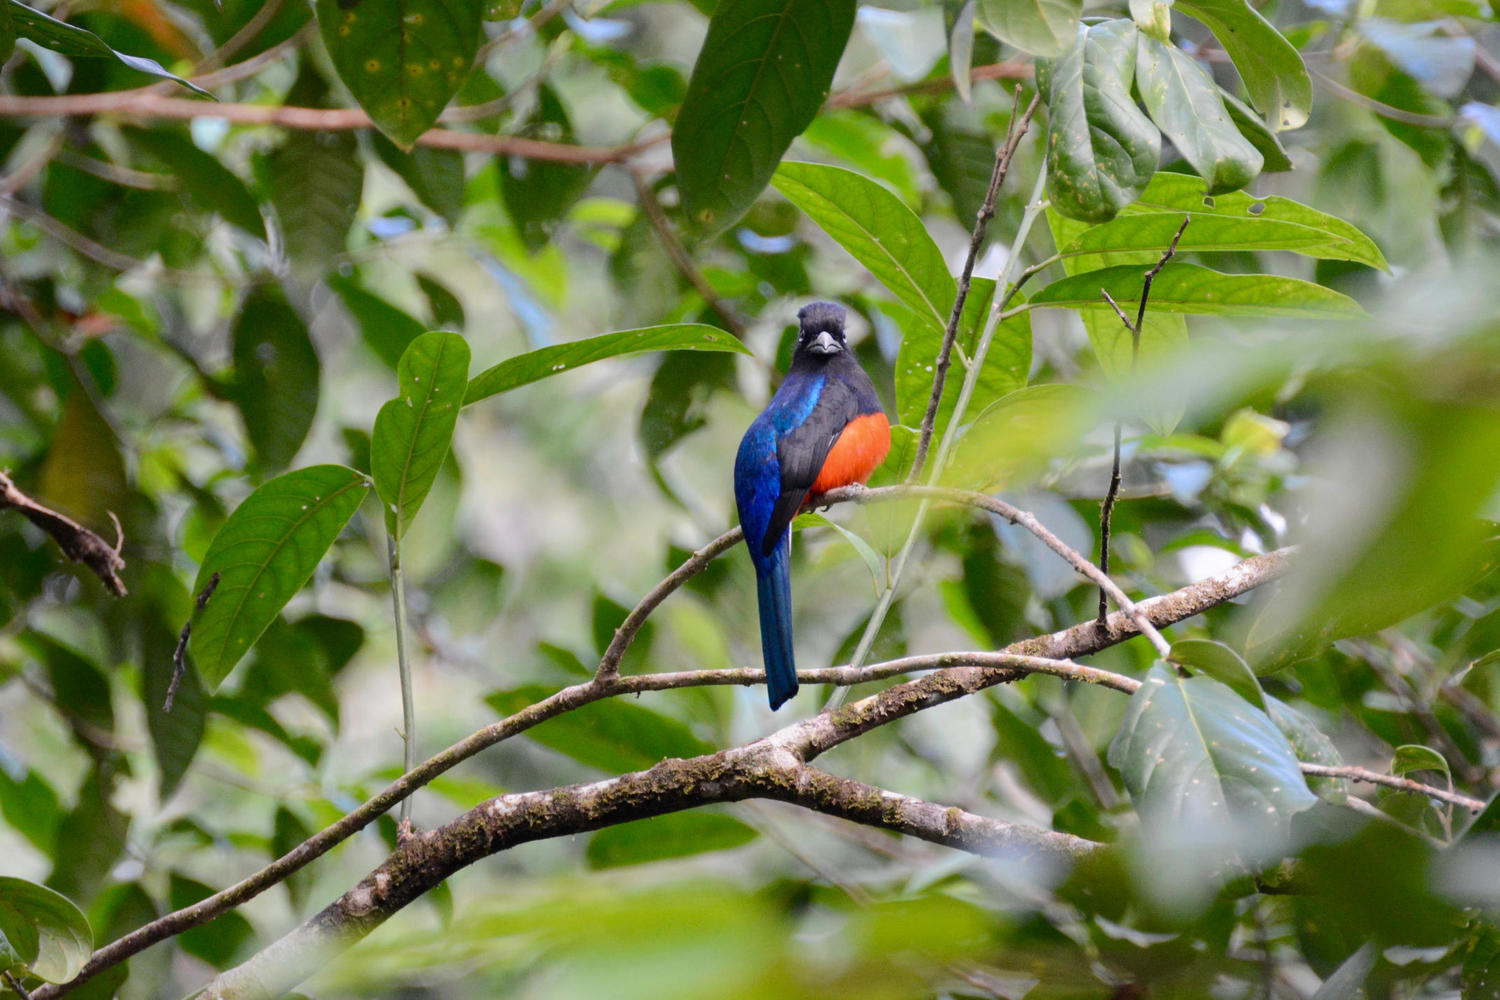 A beautiful little bird looks at the camera in Corcovado National Park